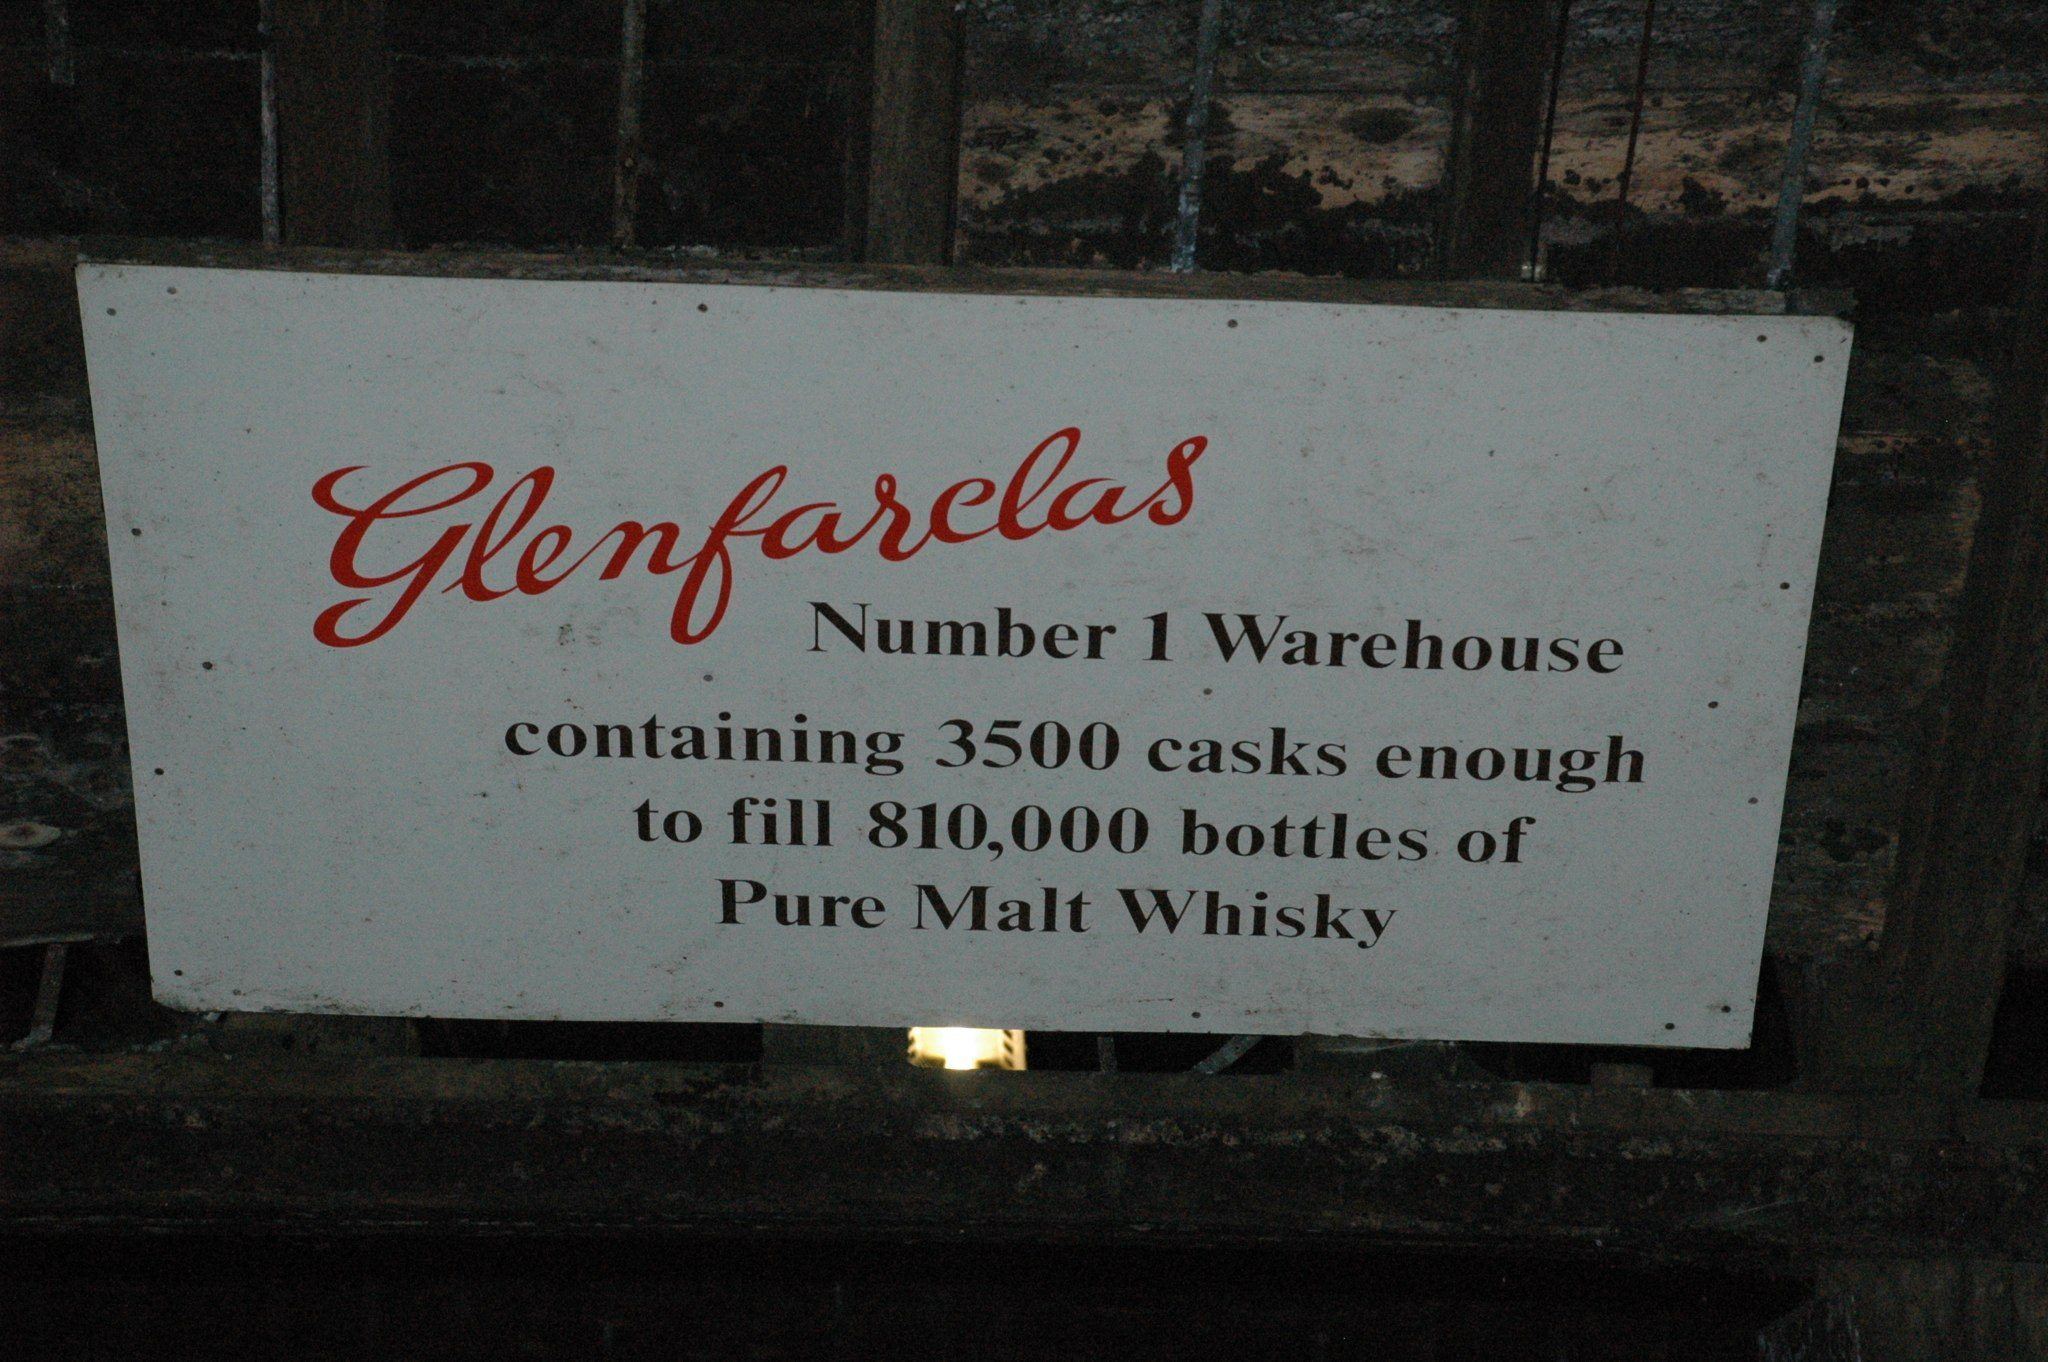 Warehouse sign at the Glenfarclas Distillery